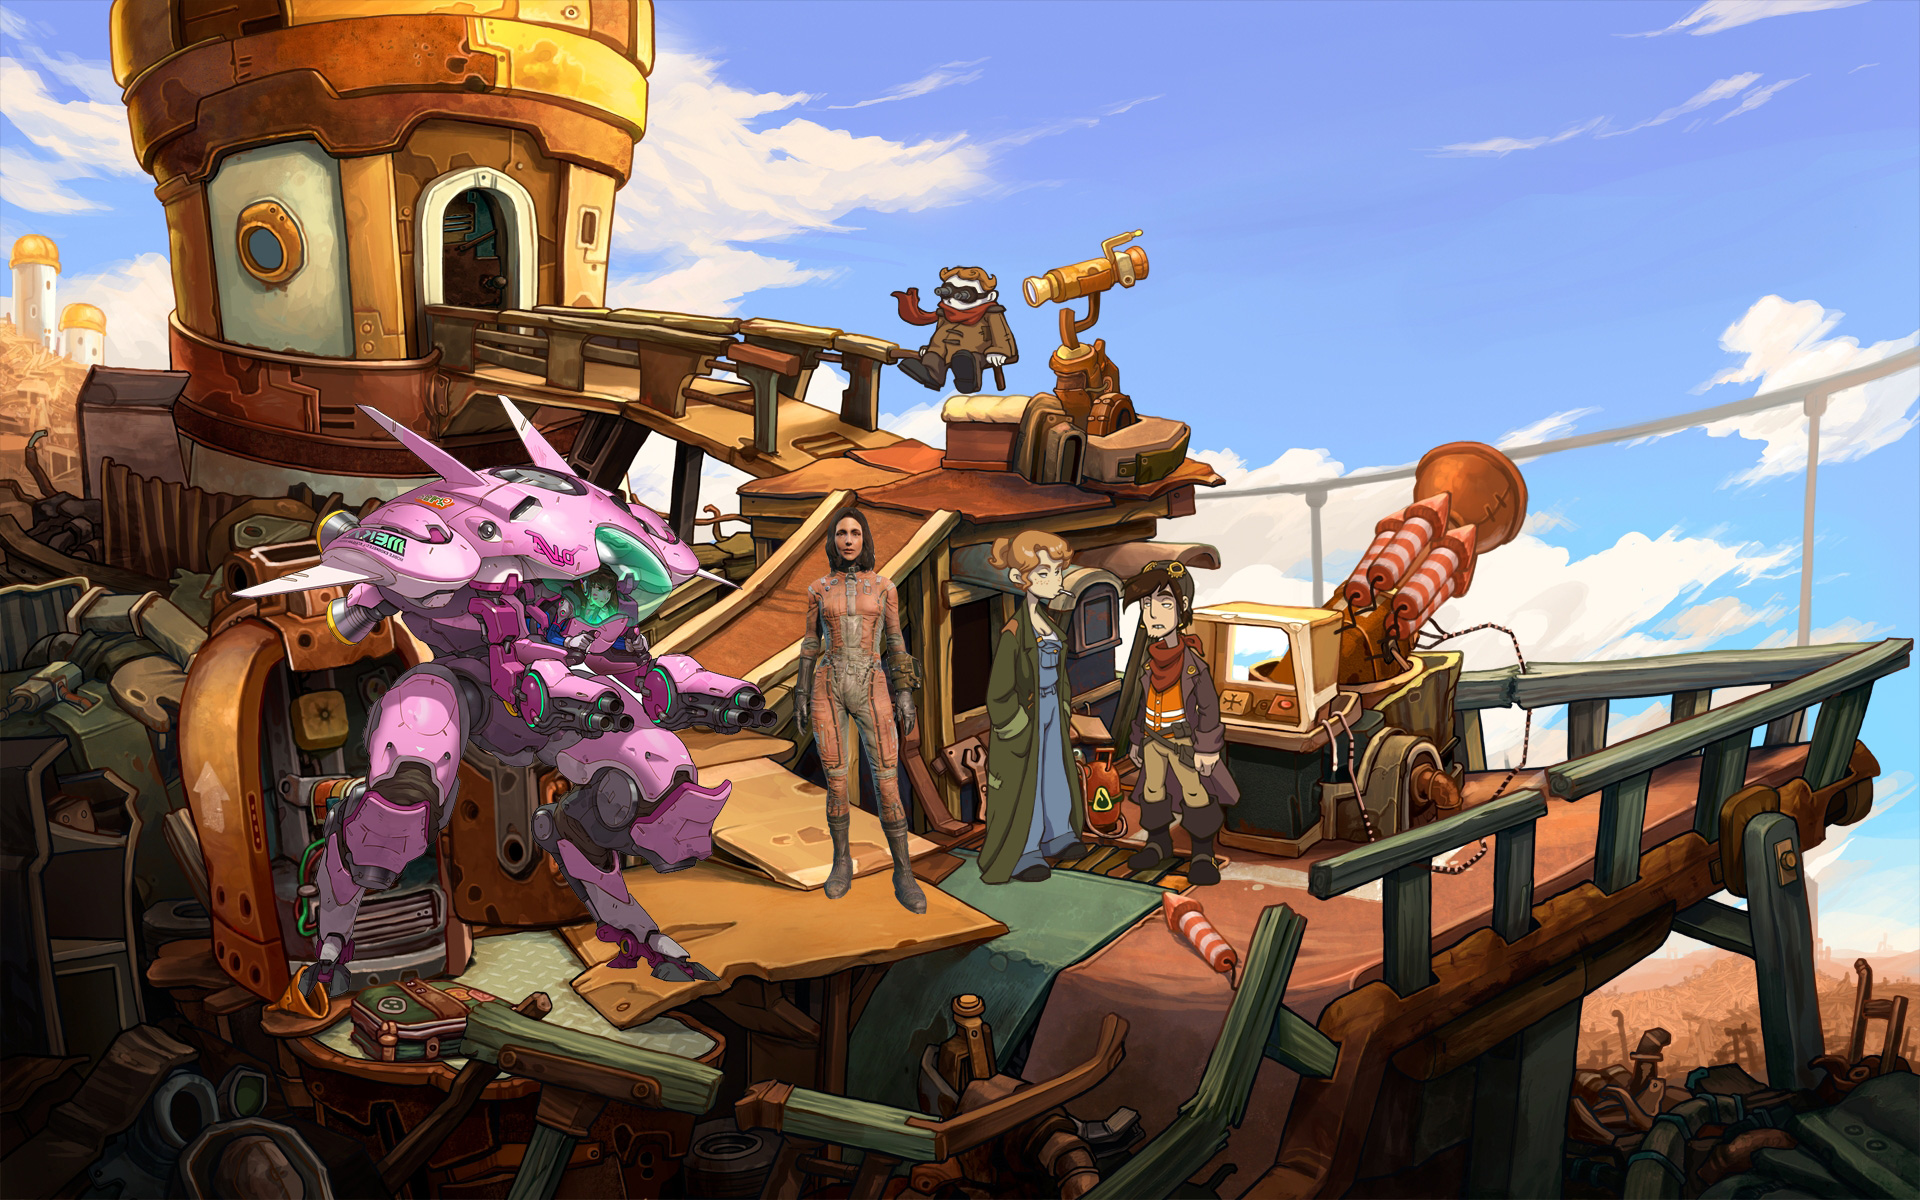 38 – Overwatch / Fallout 4 / Deponia